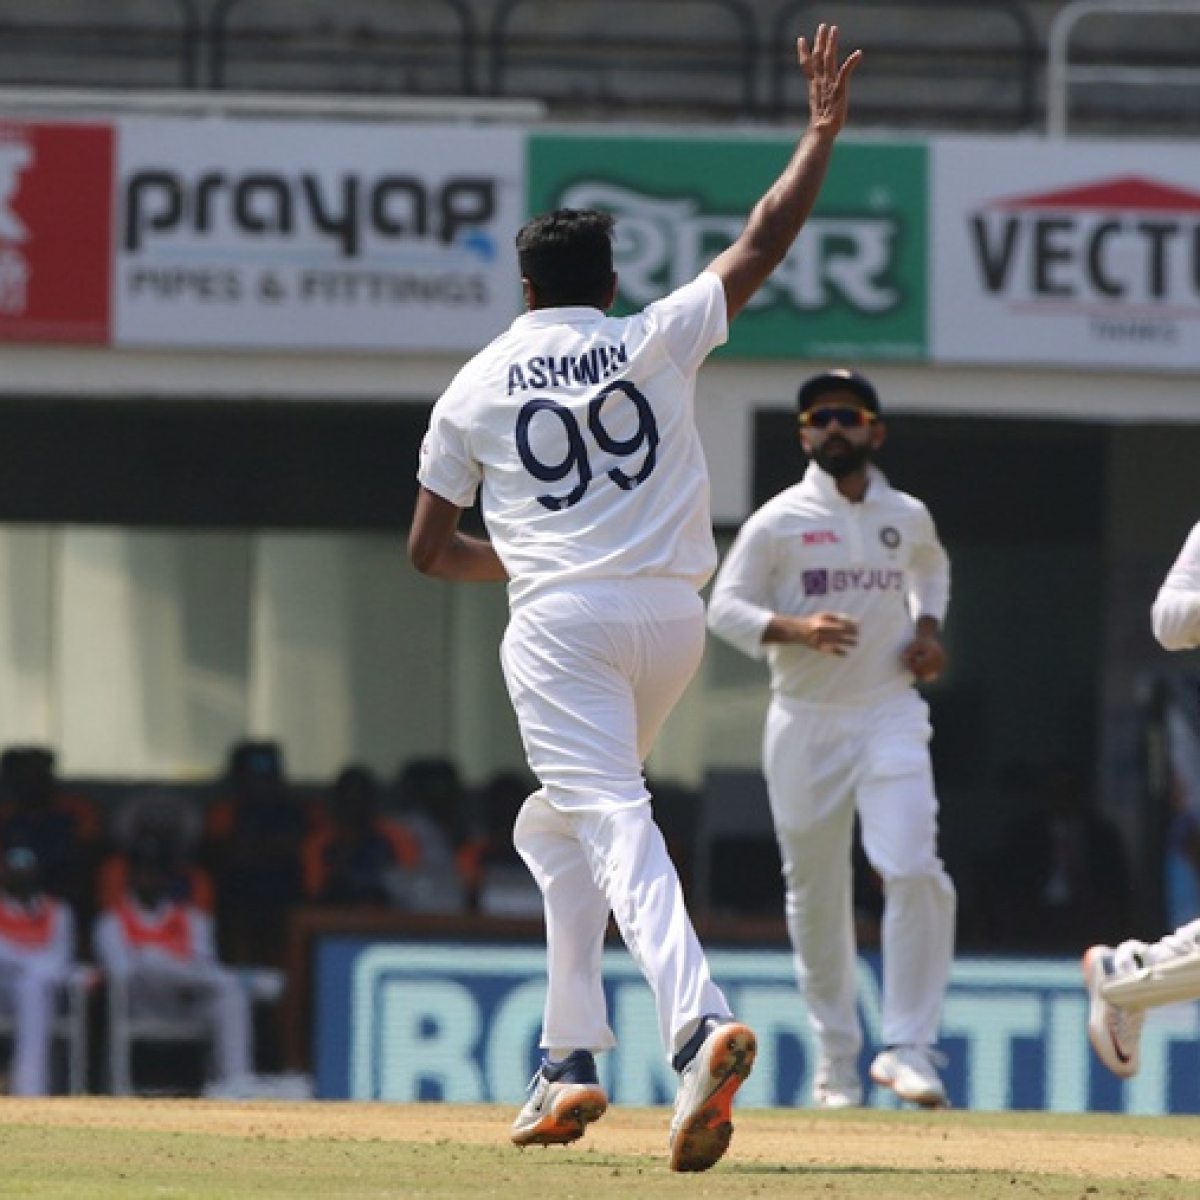 India vs England, 1st Test: England 67 for 2 at lunch on Day 1 of first Test against India